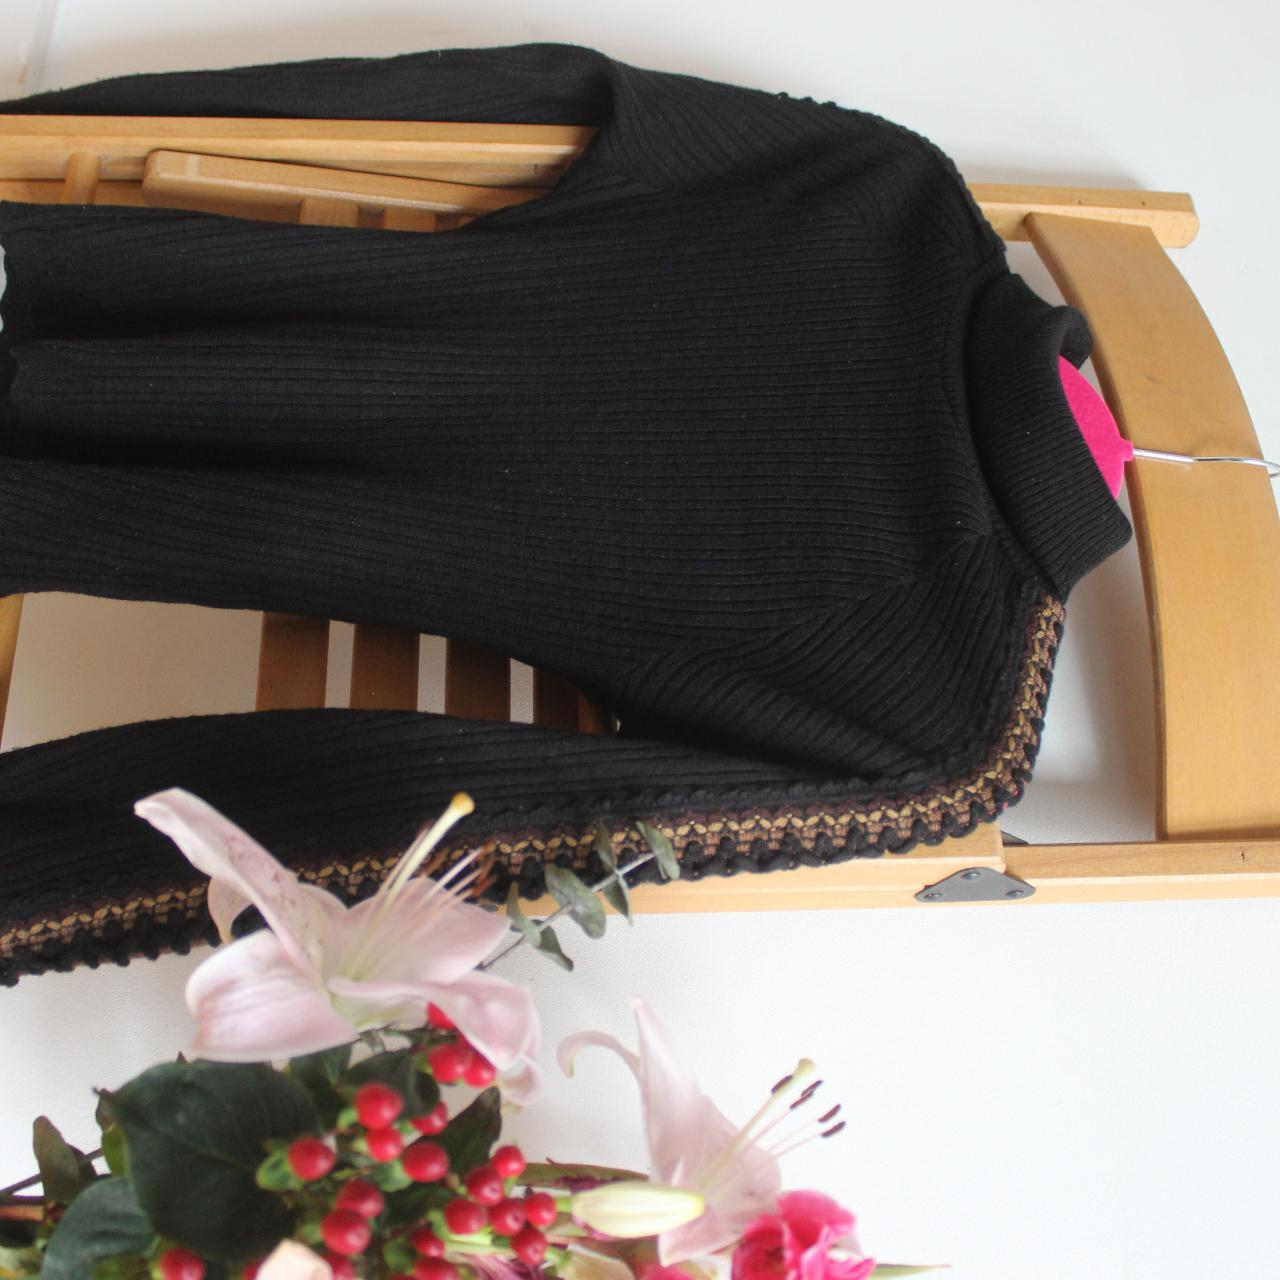 Product Image 1 - Black knitted high neck top